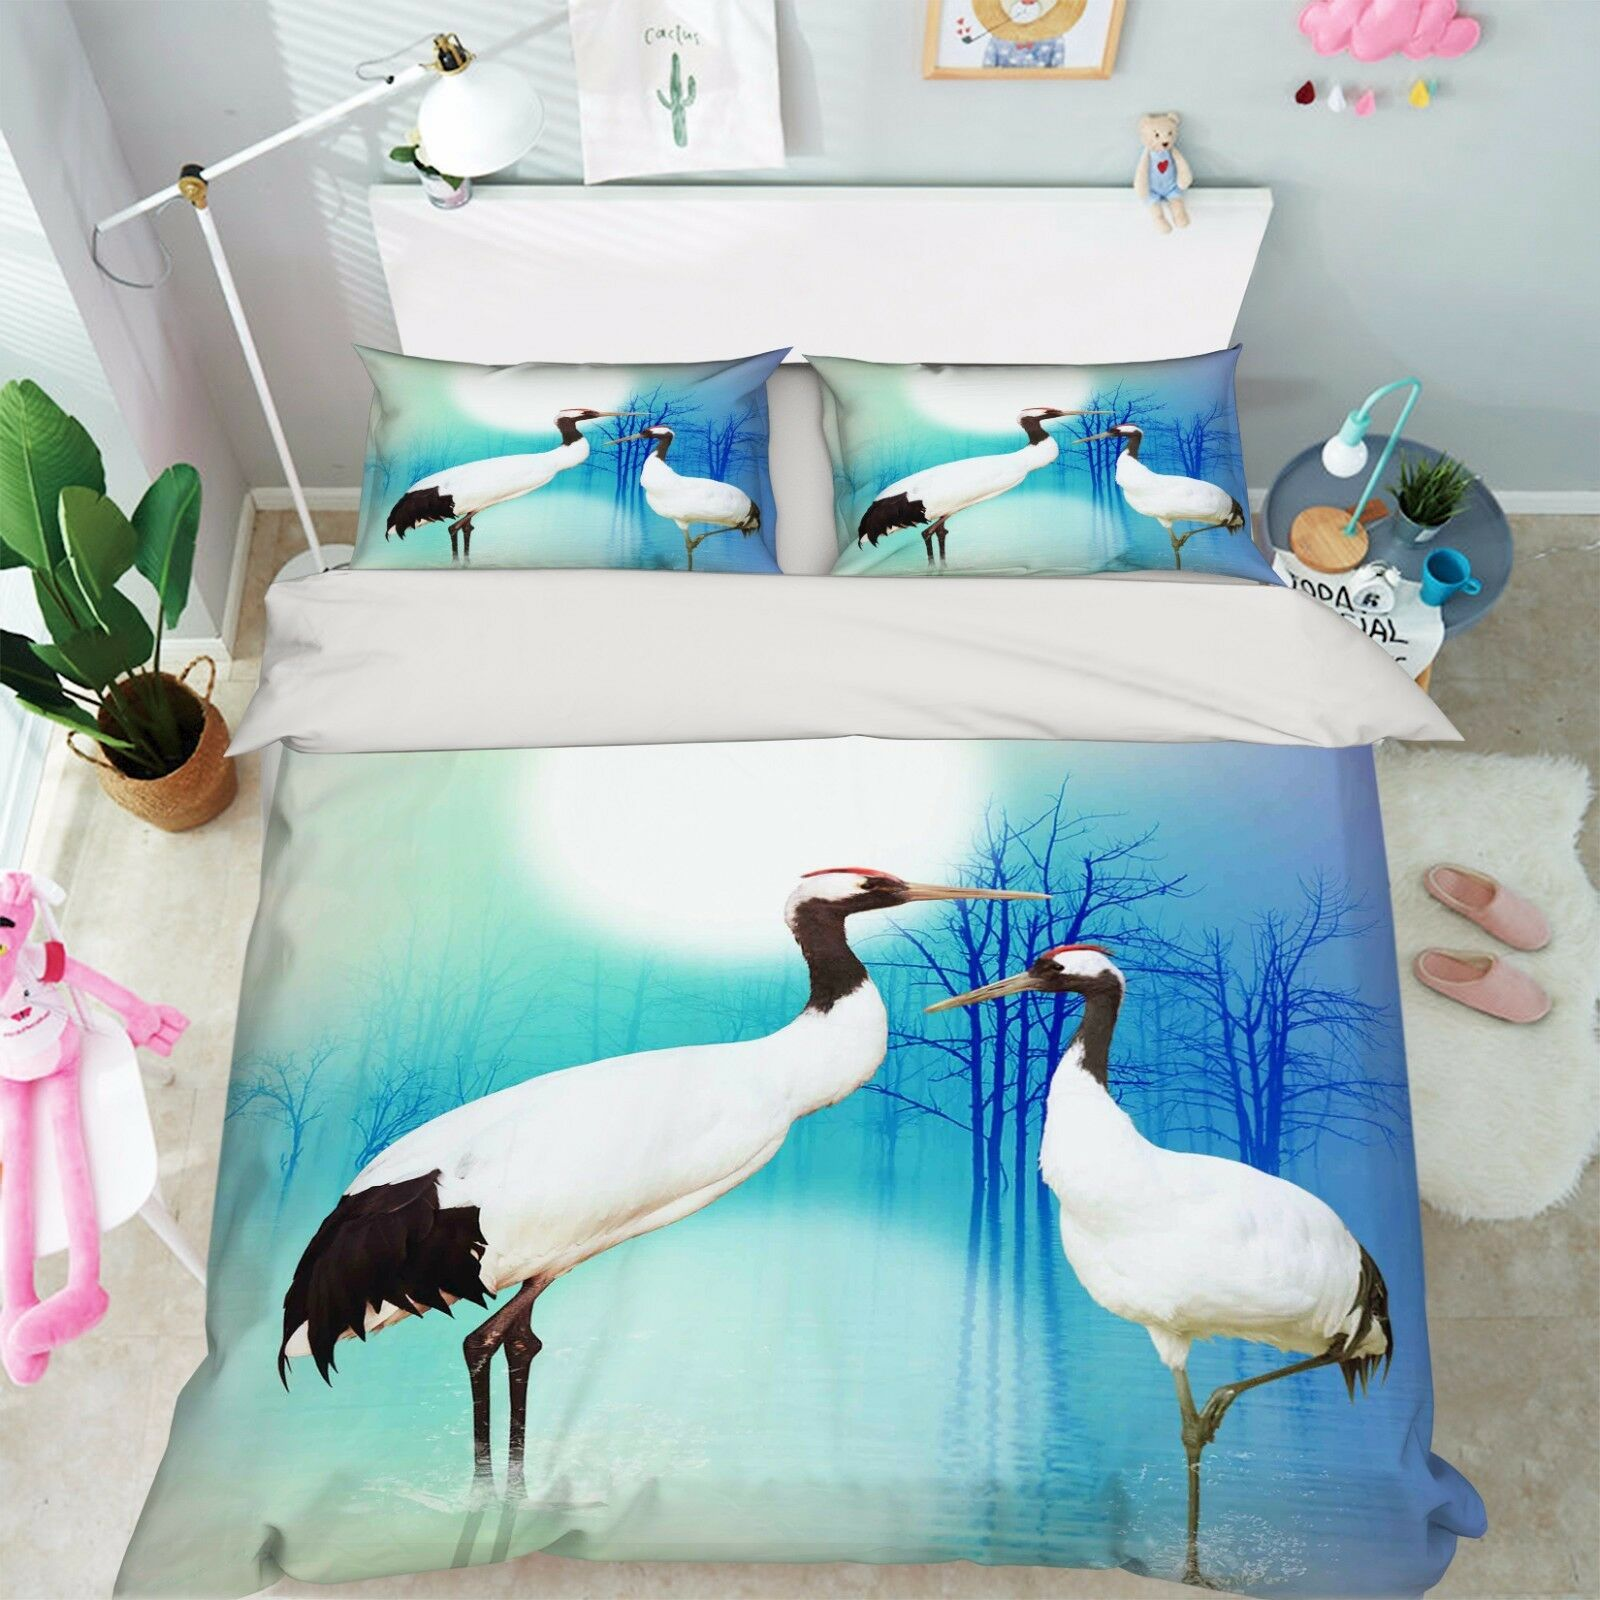 3D Lake Cranes 2 Bed Pillowcases Quilt Duvet Cover Set Single Queen King Größe AU